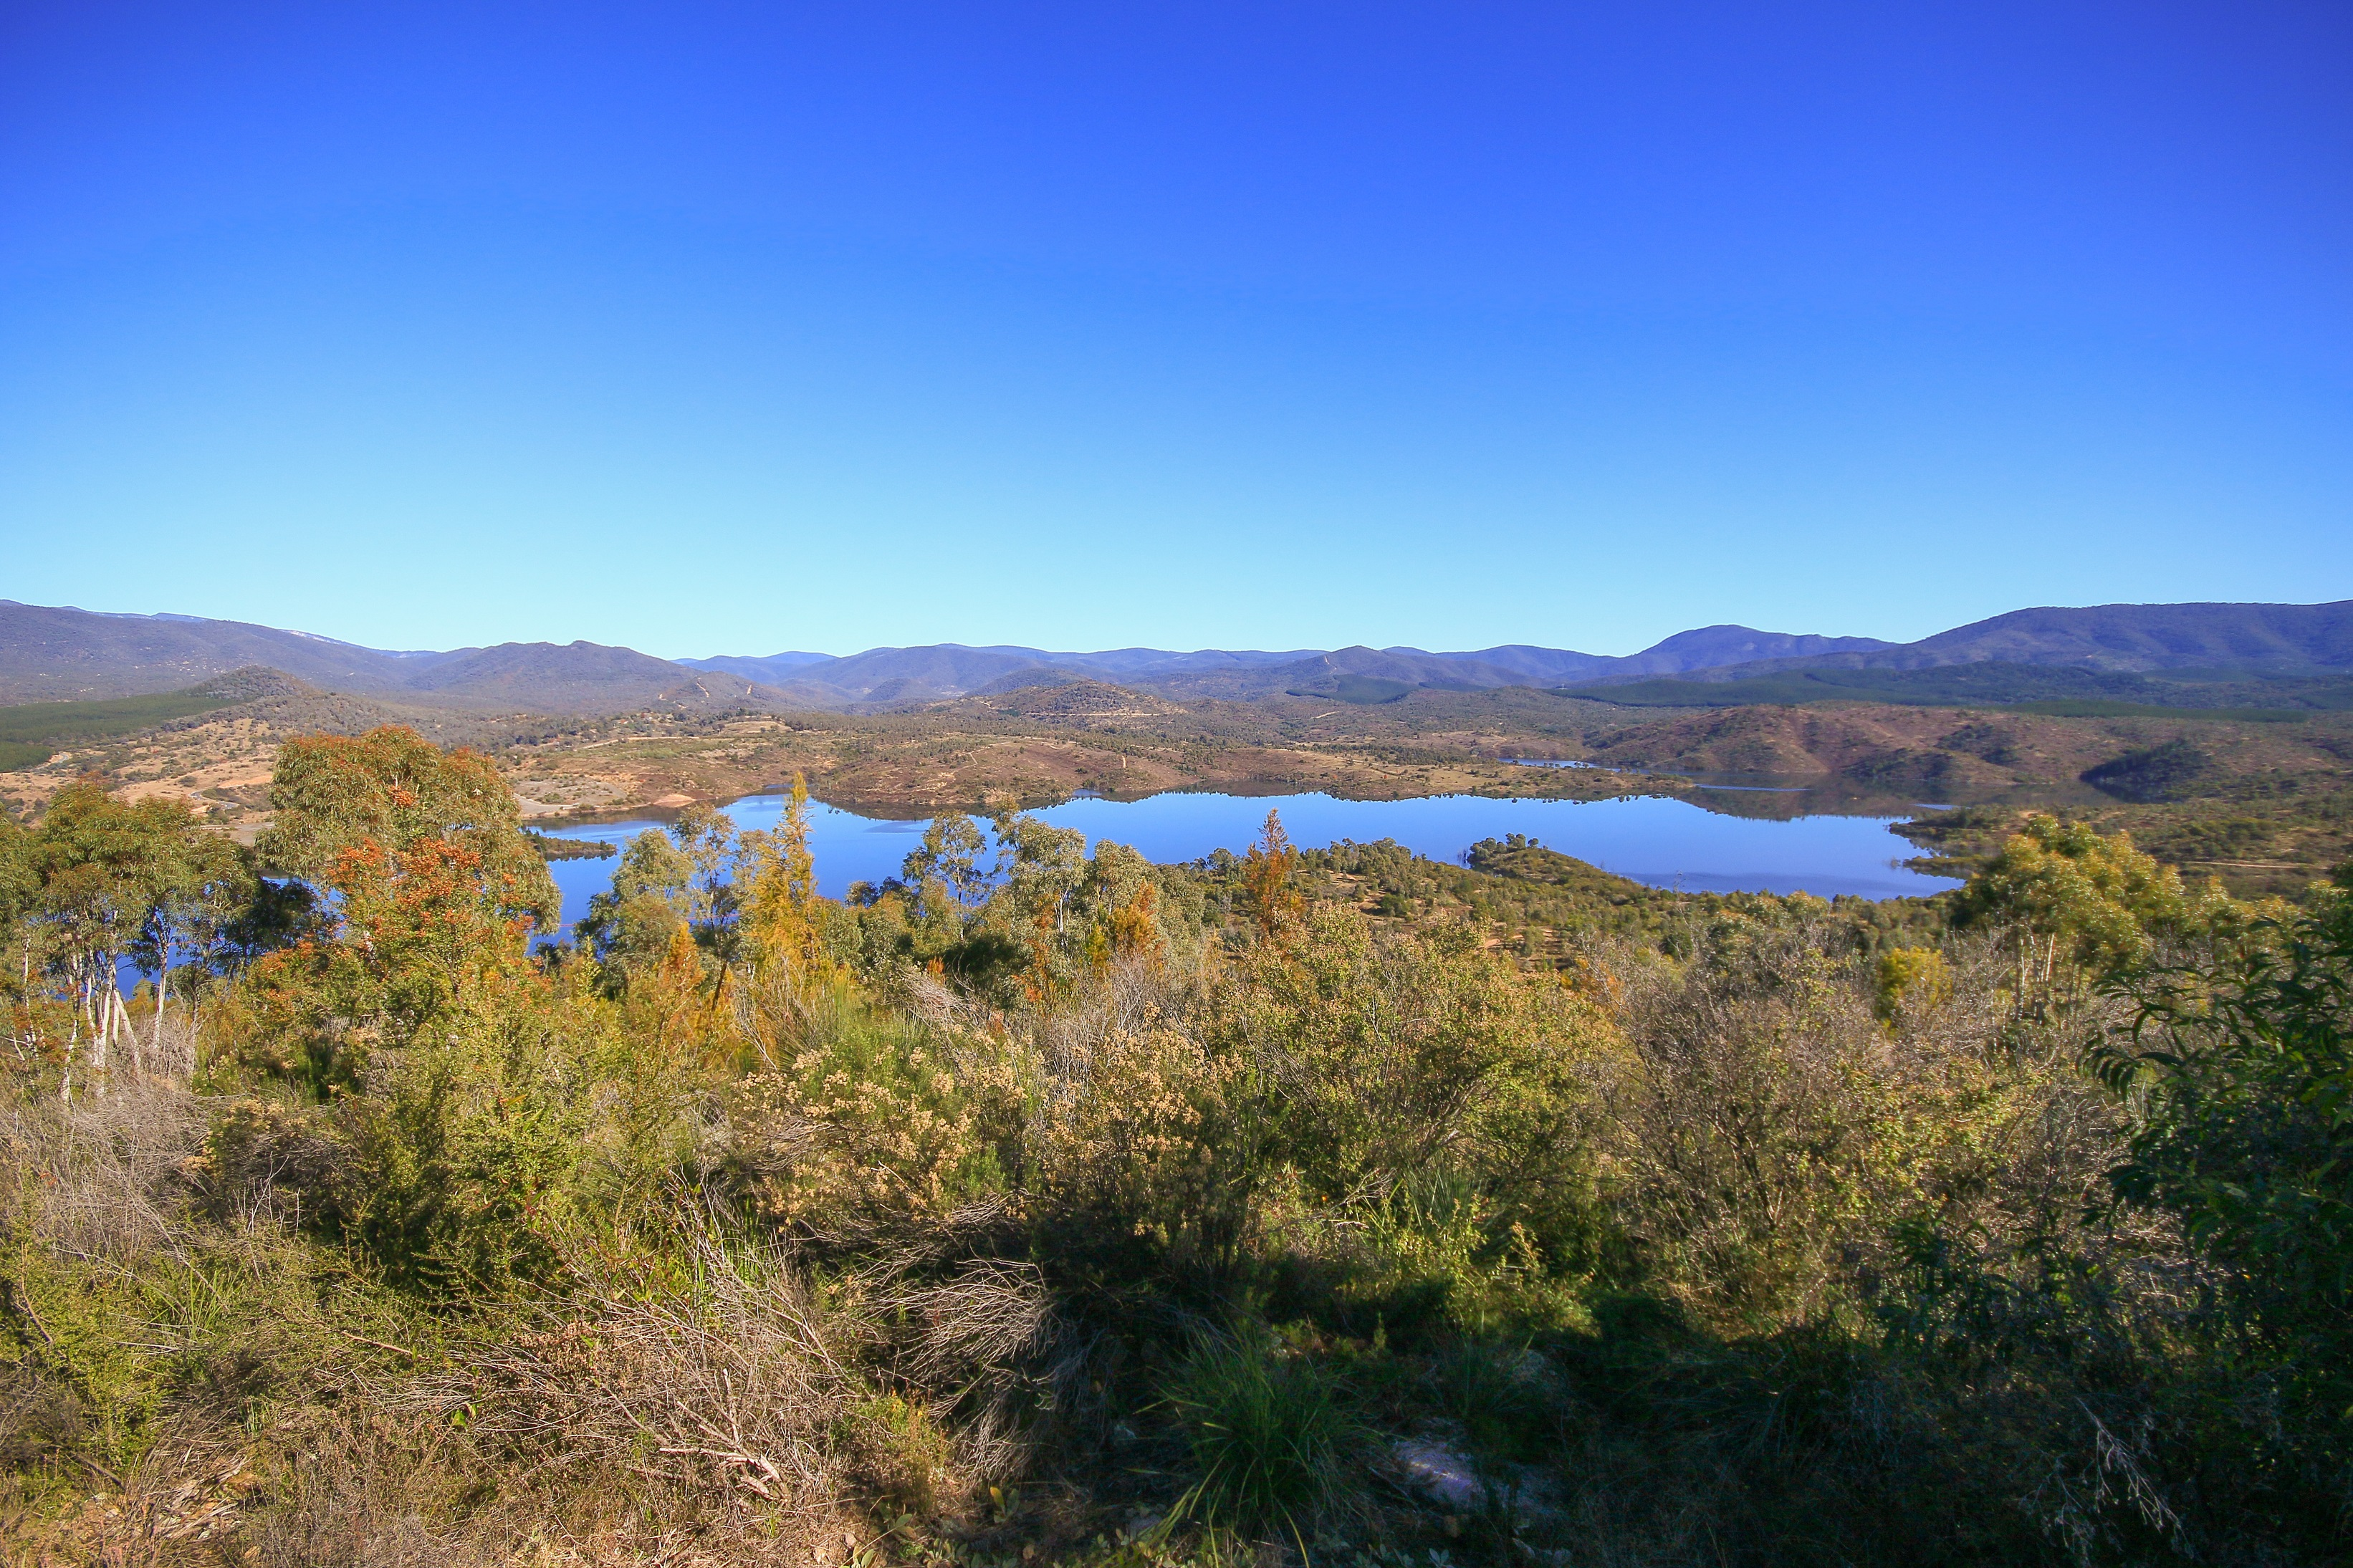 A large reservoir surrounded by forest and hills